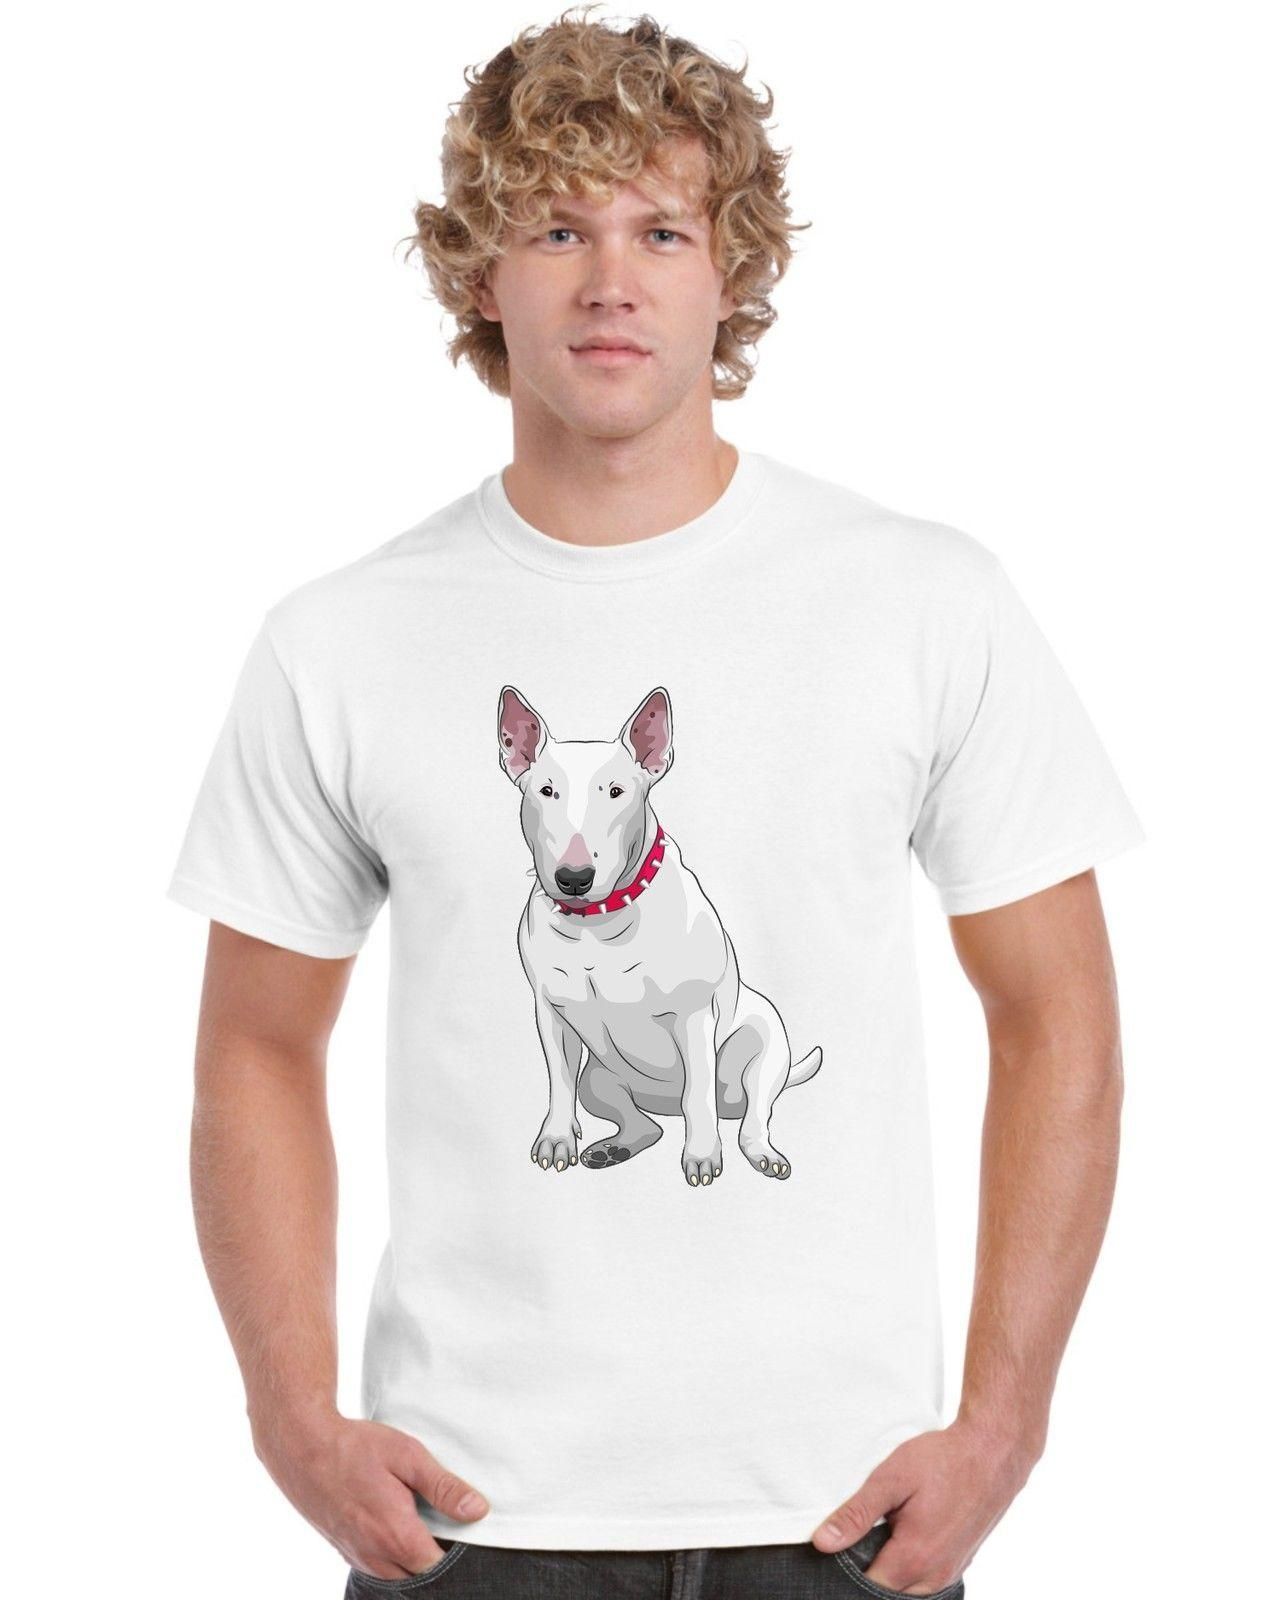 36c32f5c English Bull Terrier T Shirt Funny Unisex Casual Tee Gift Custom Shirt  Black Shirts From Tshirtsinc, $12.96| DHgate.Com